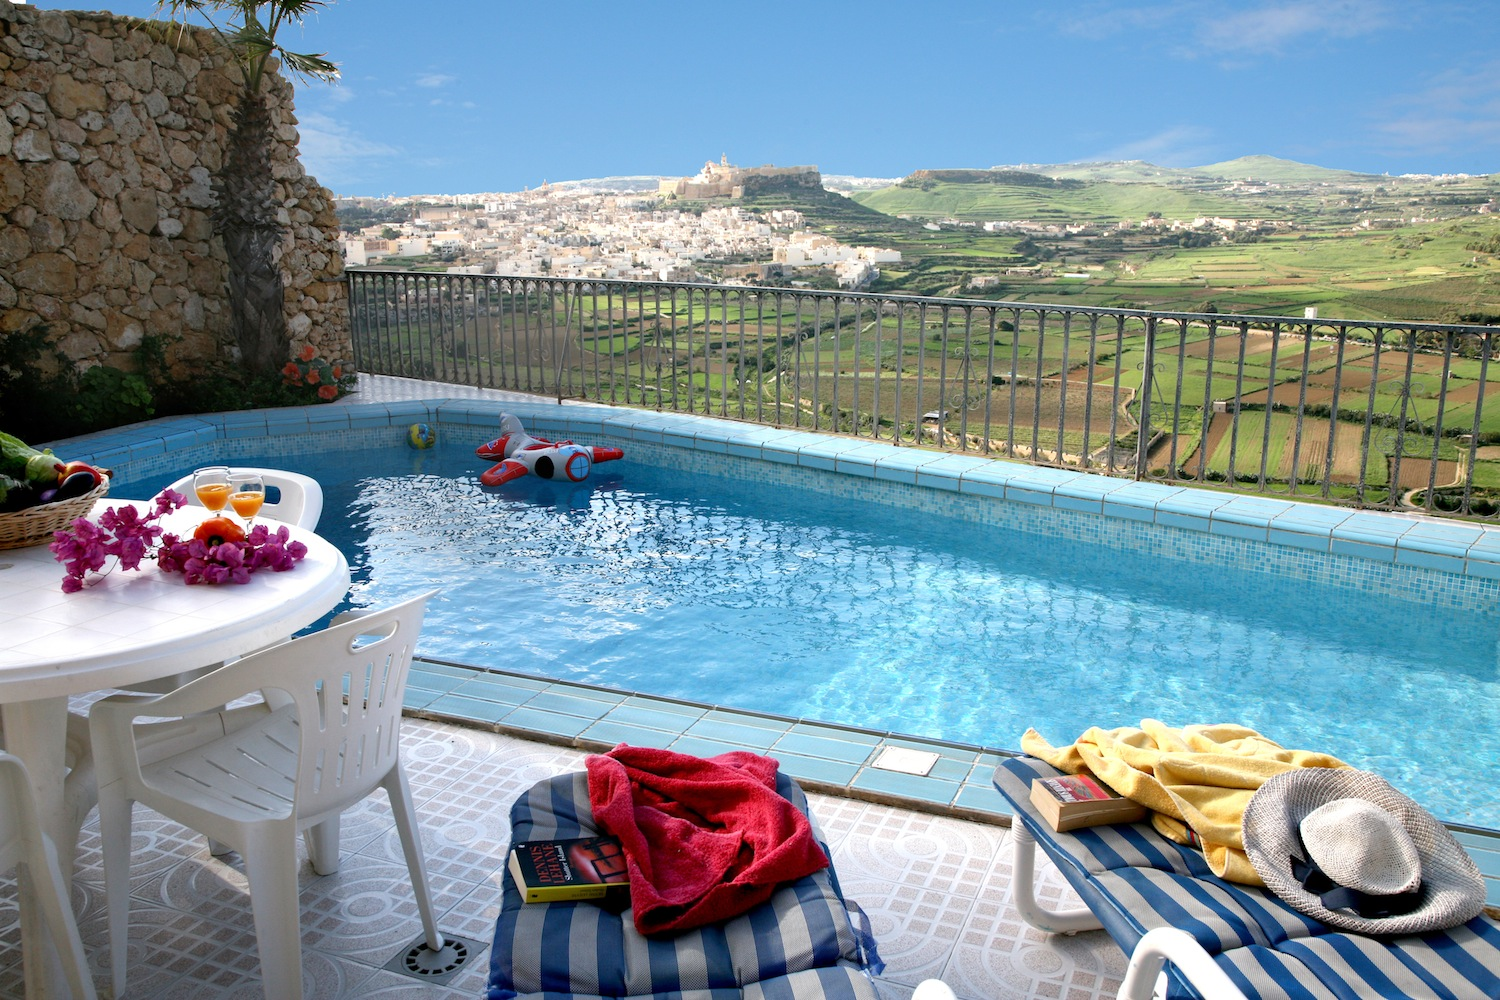 Pool with view of rolling hills